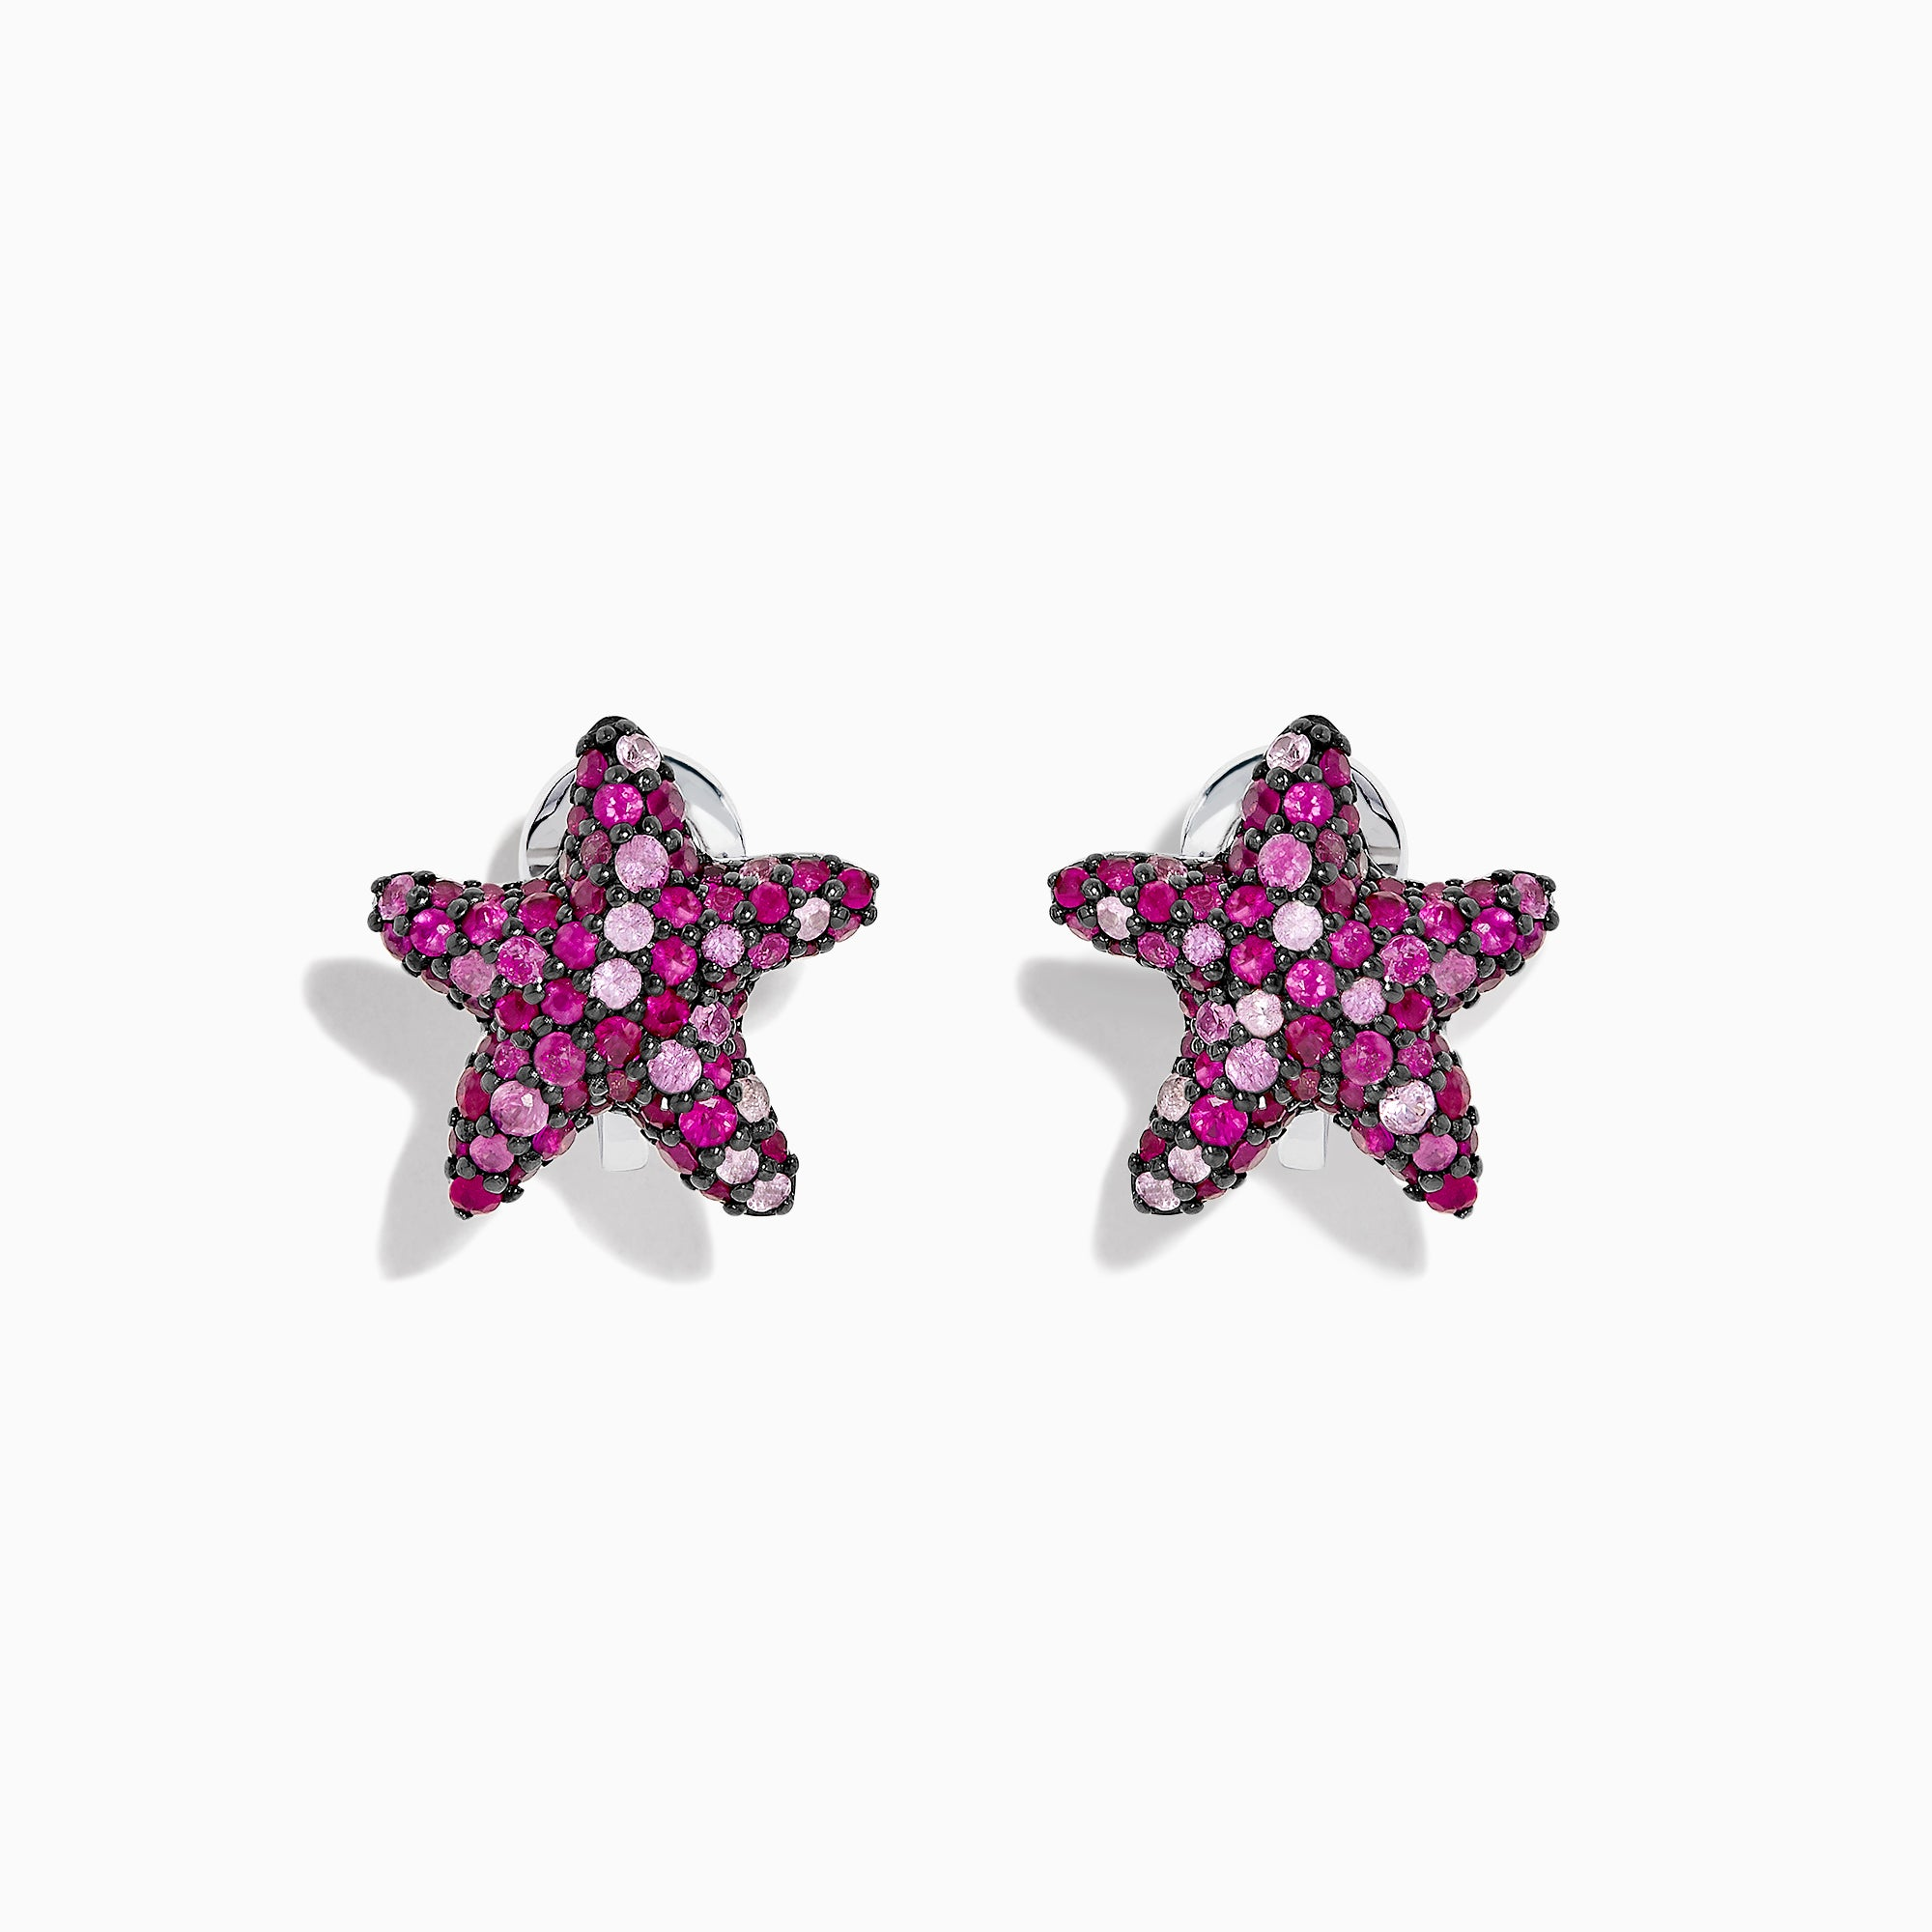 Effy 925 Splash Ruby & Pink Sapphire Starfish Earrings, 2.35 TCW